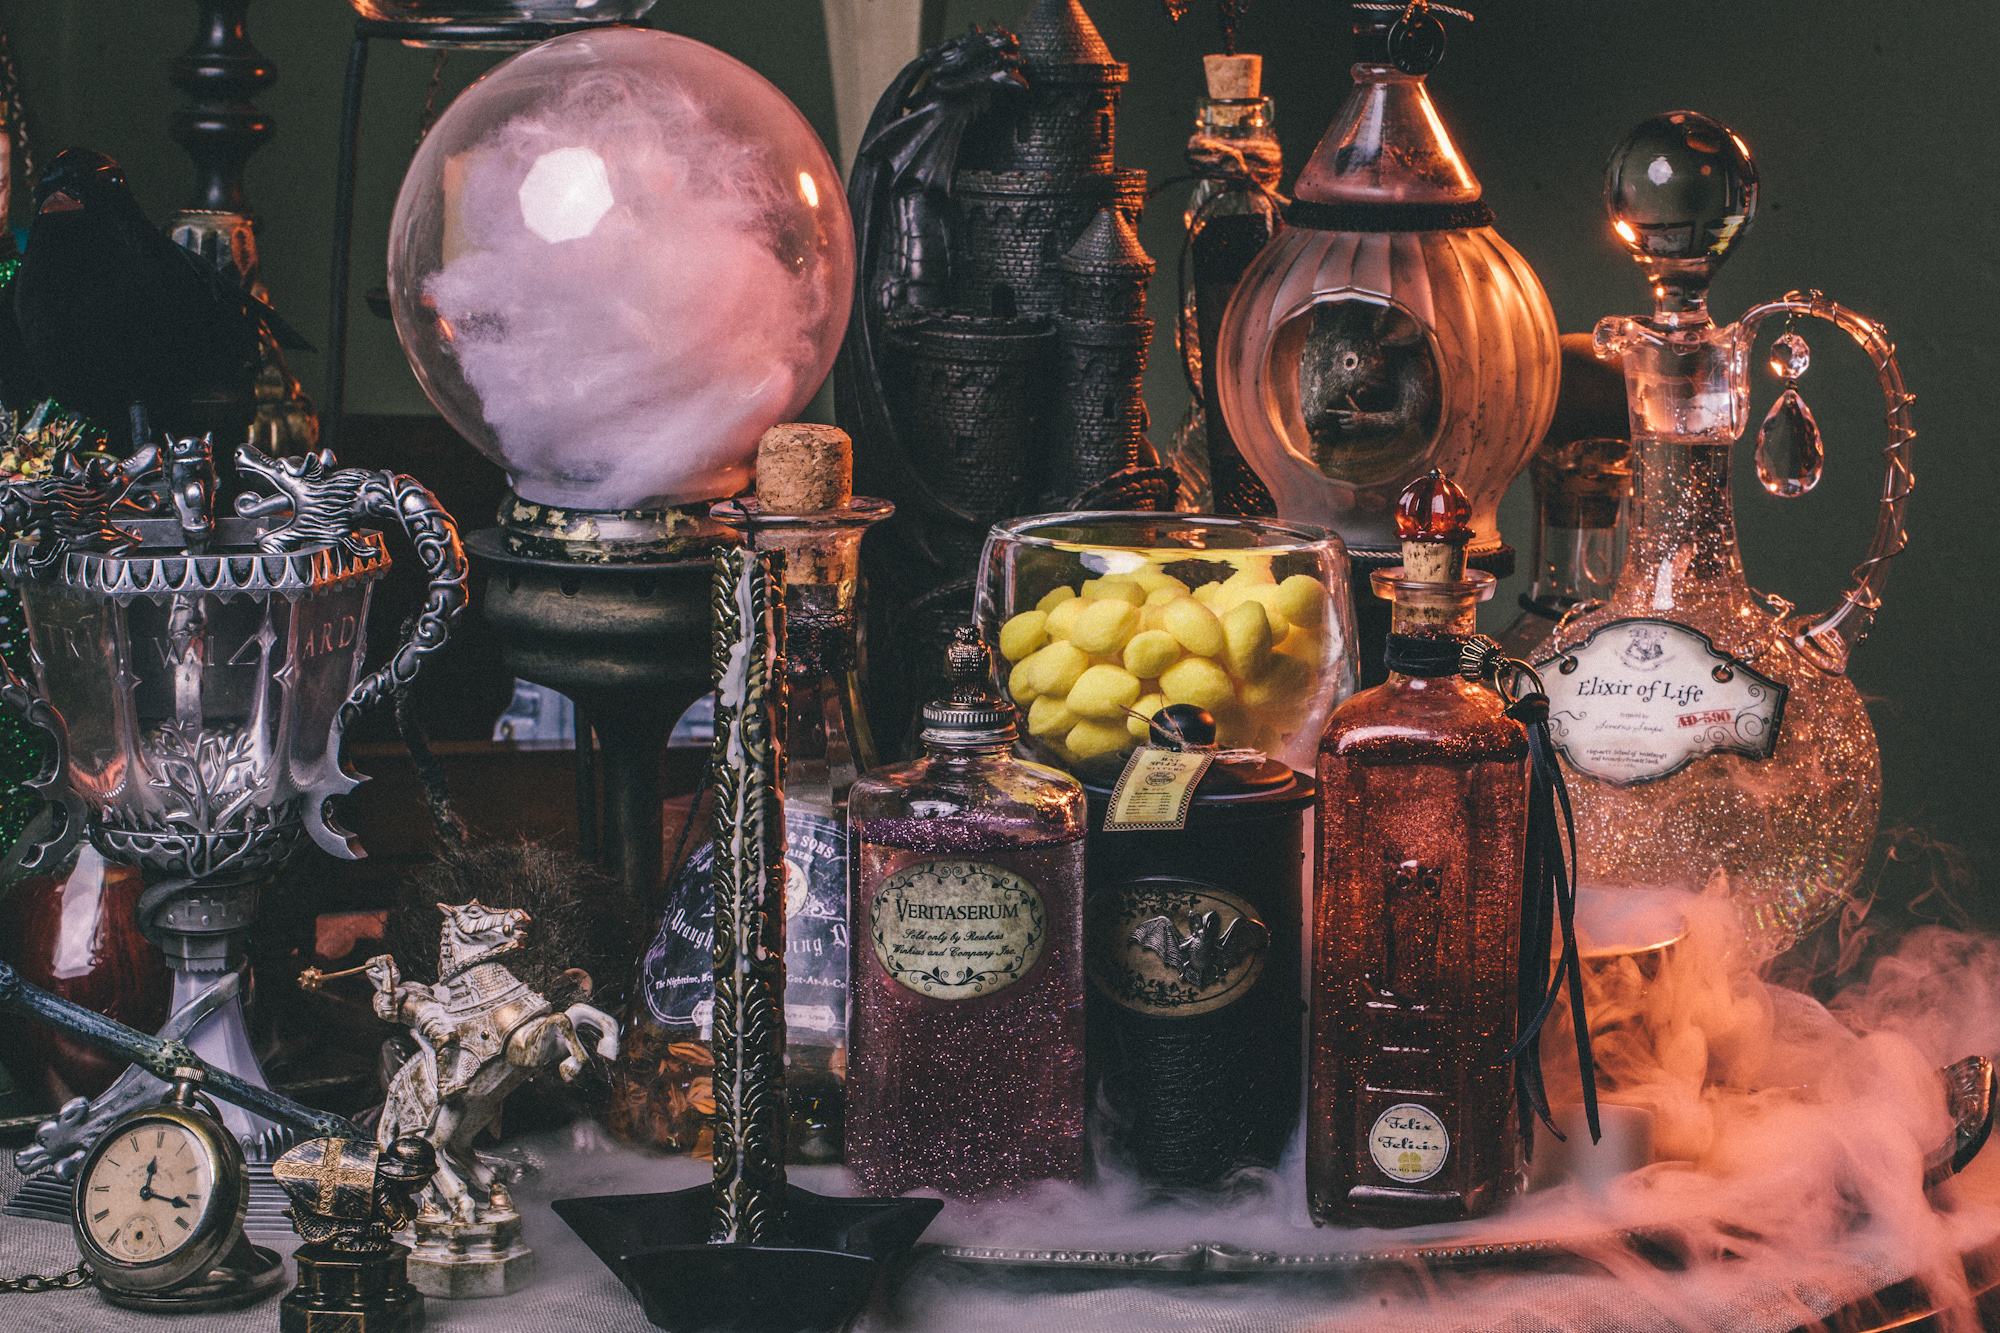 DIY Harry Potter Potion Display For Halloween: Dumbledoreu0027s Office